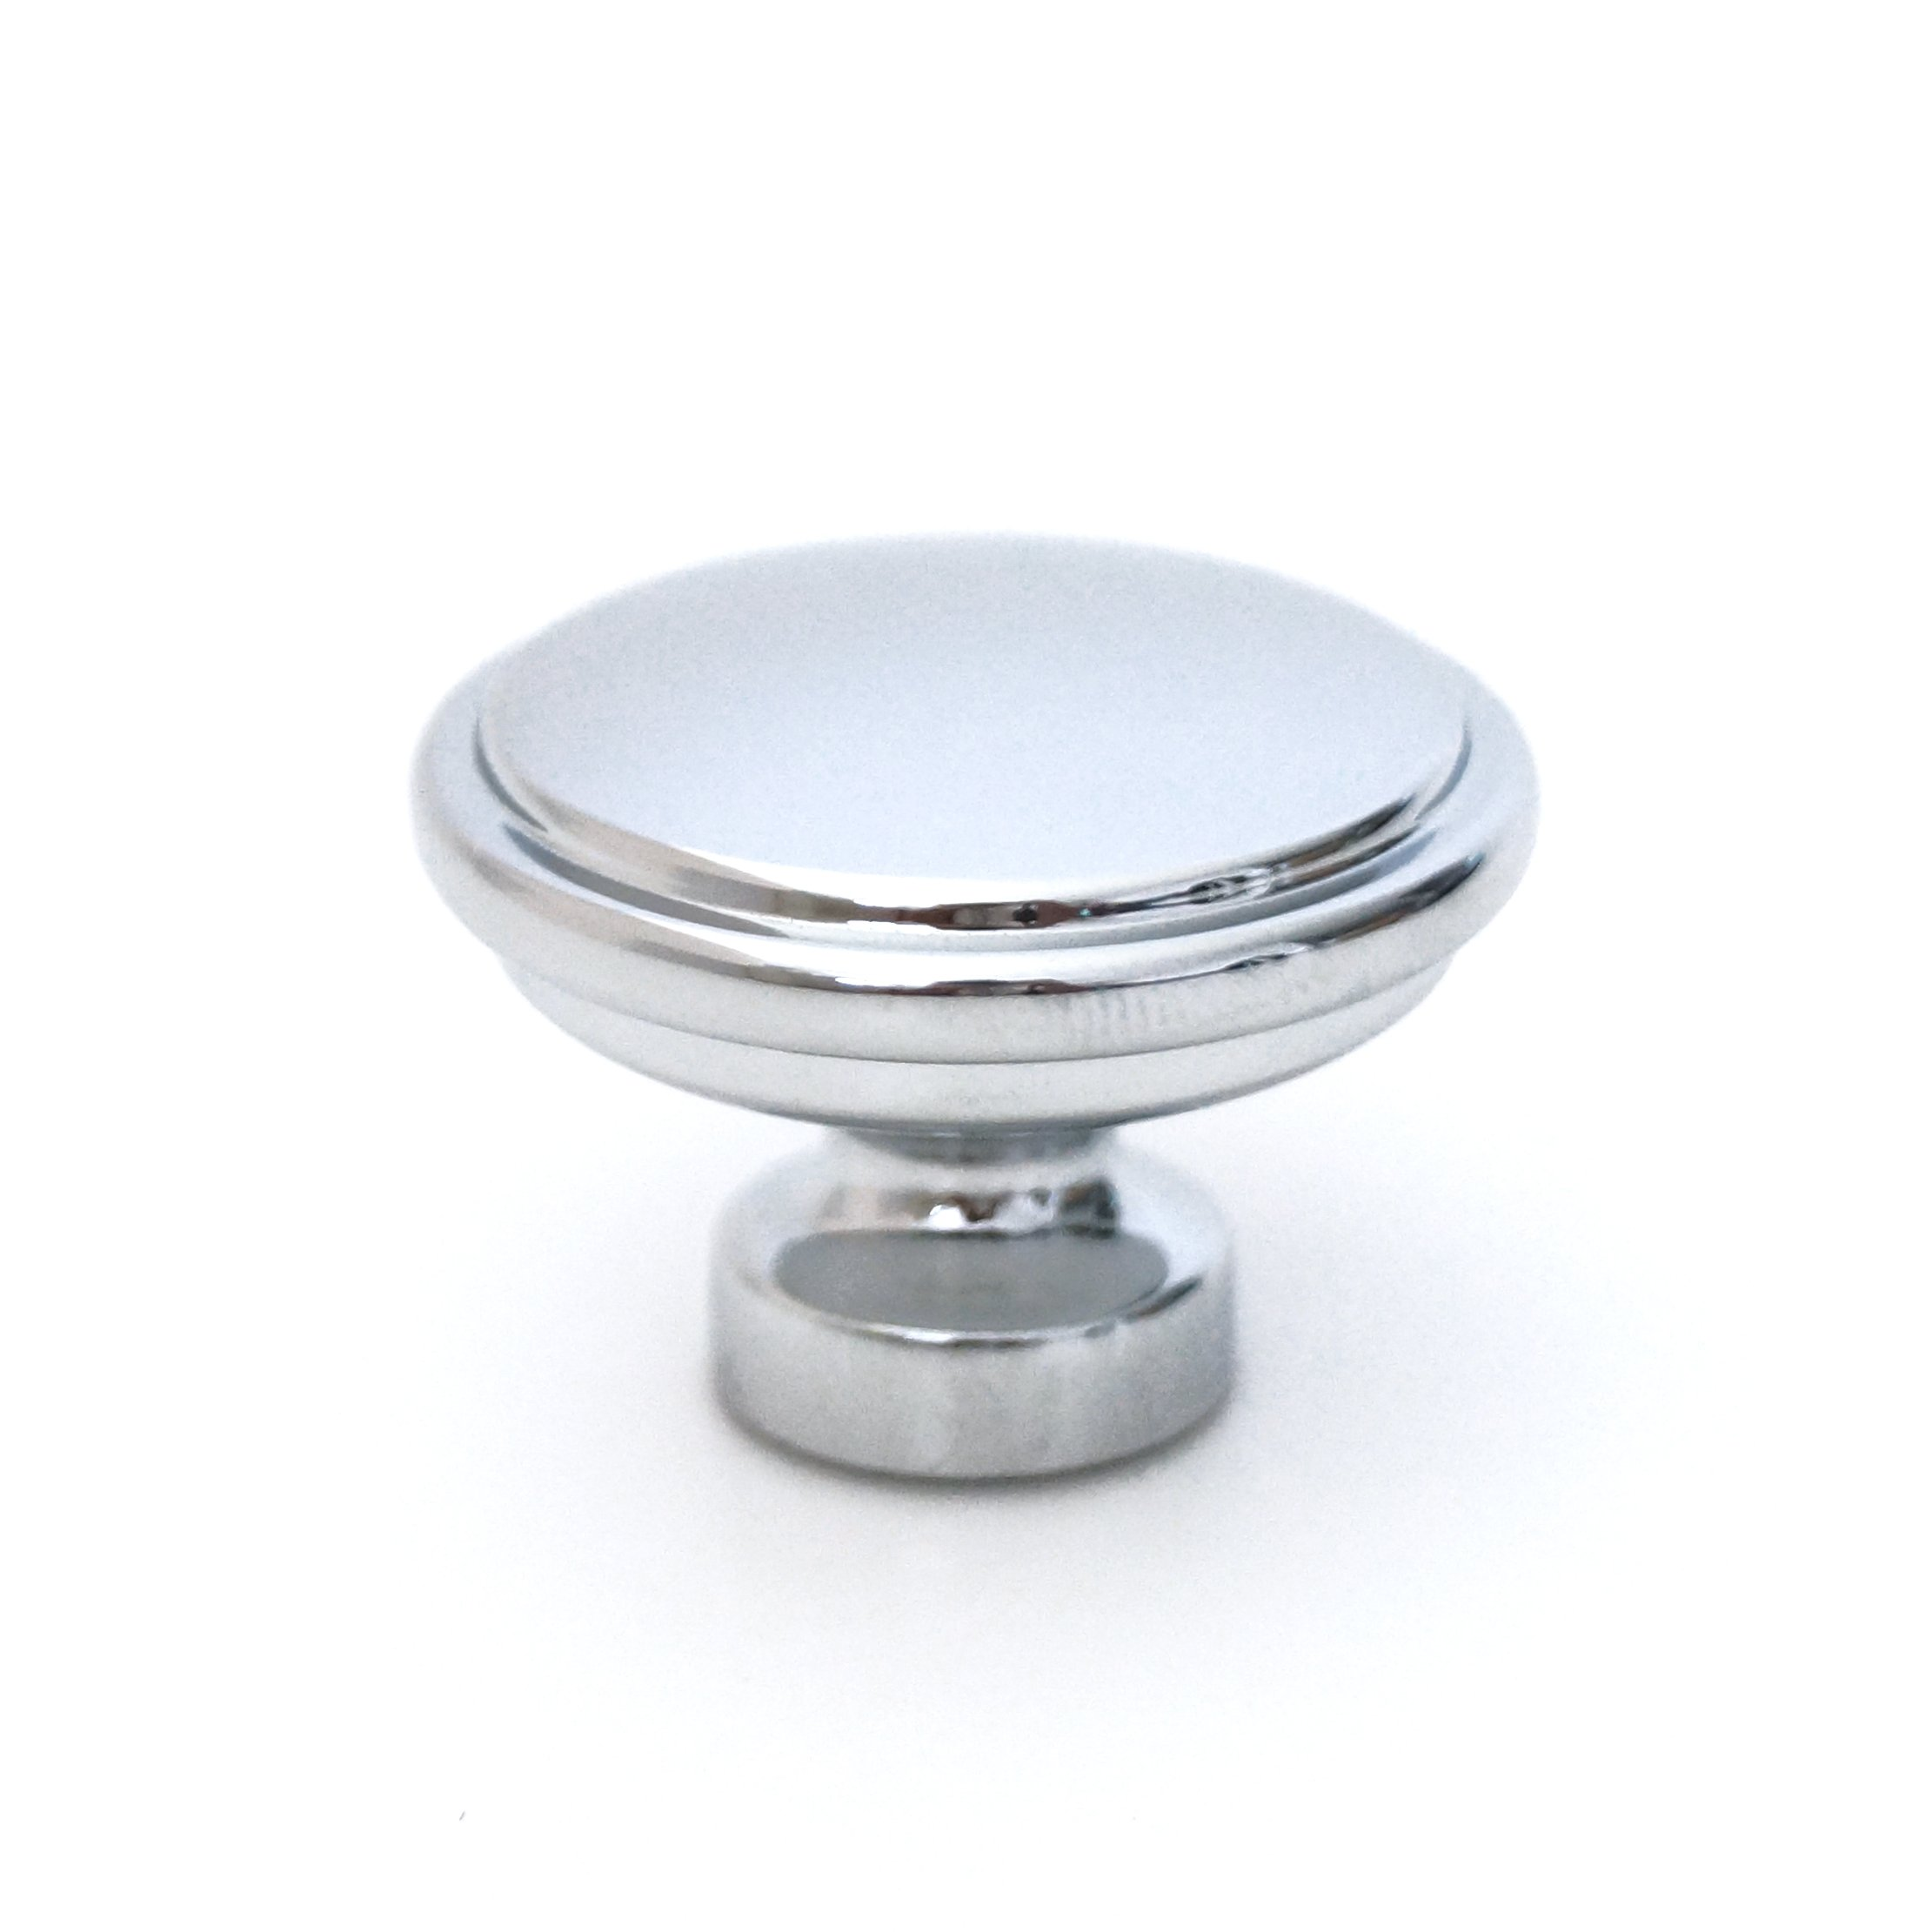 (Qty 1 per Package) Kruse Hardware - Milano Door and Drawer Knob - 1-1/4in Diameter, Polished Chrome